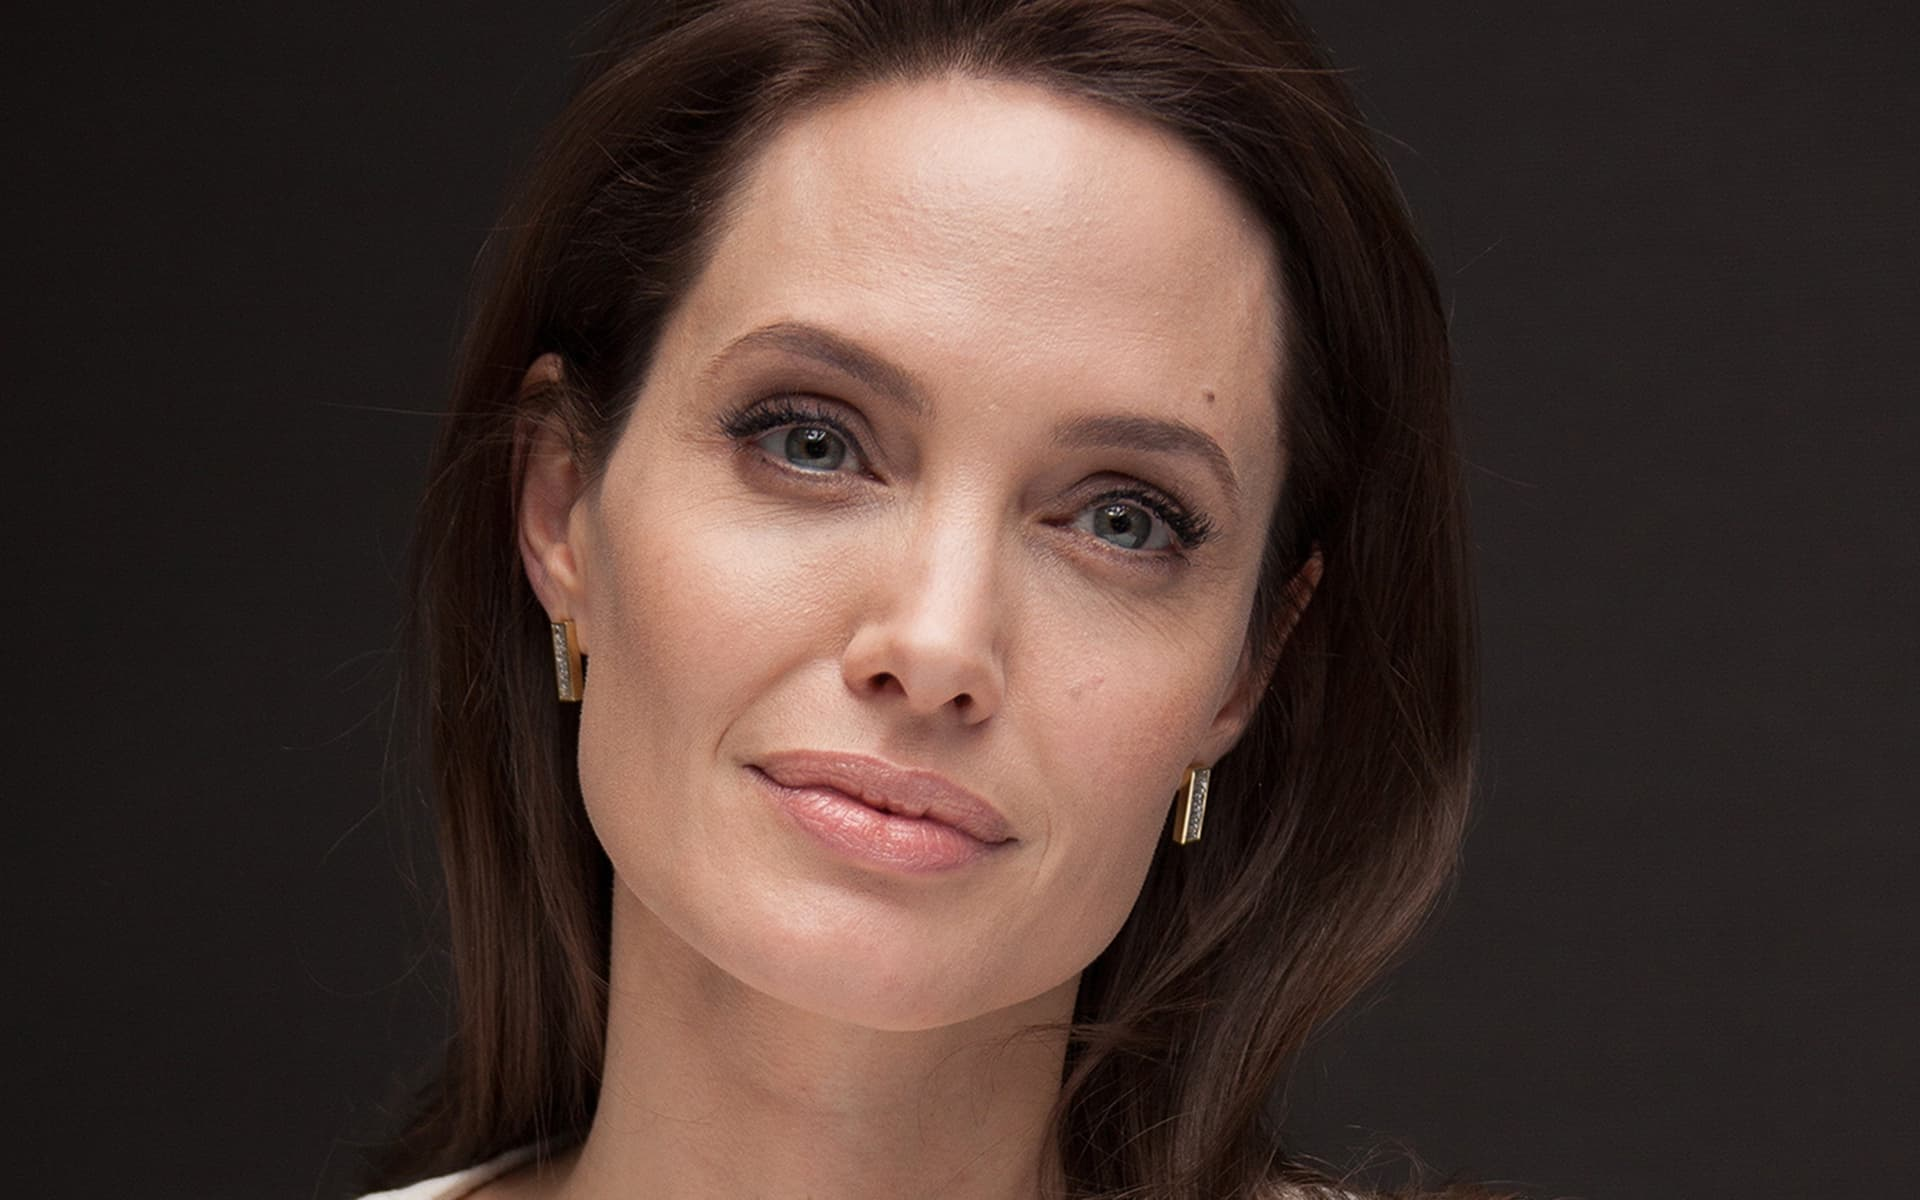 30+ Angelina Jolie wallpapers High Quality Resolution Download